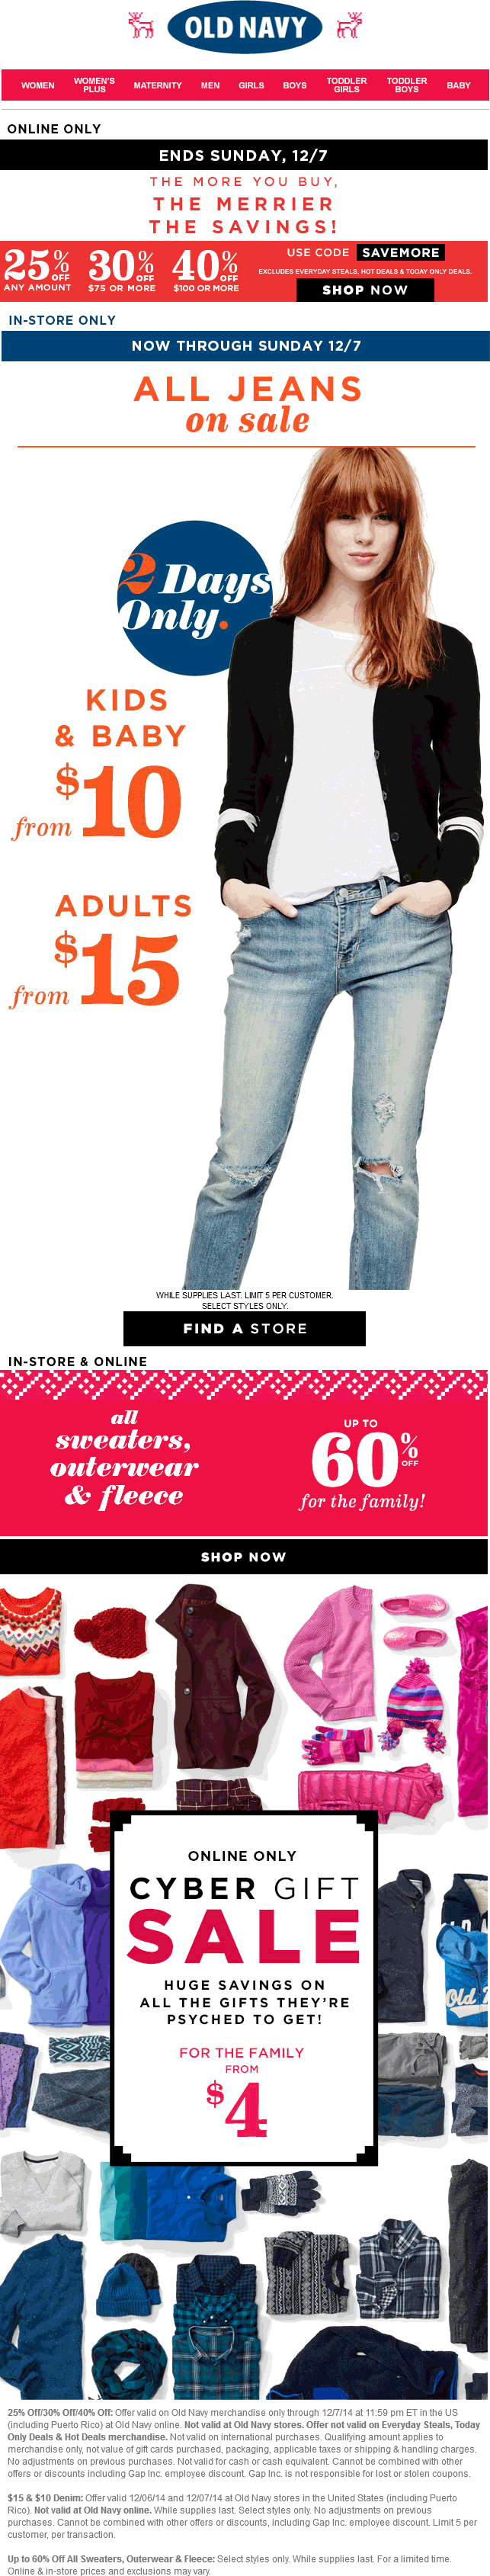 Old Navy Coupon May 2017 25-40% off everything & more online at Old Navy via promo code SAVEMORE